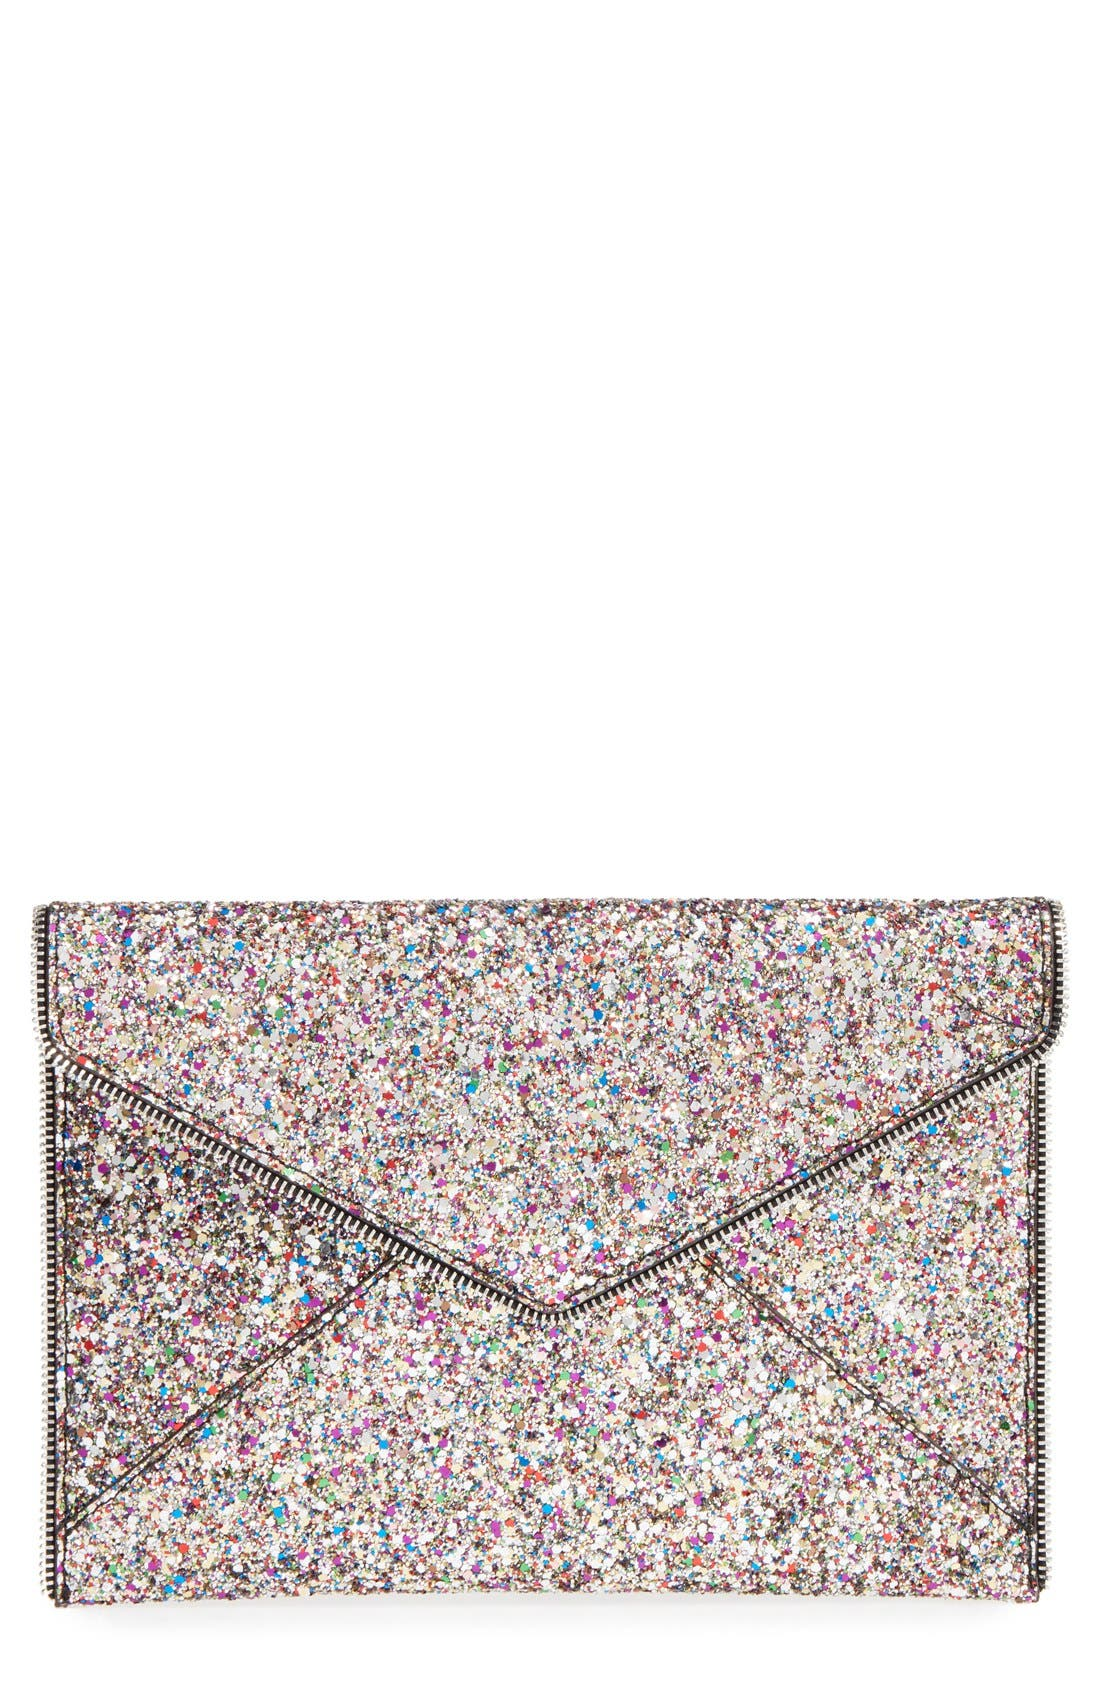 'Leo' Envelope Clutch,                         Main,                         color, SILVER/ SILVER HRDWR